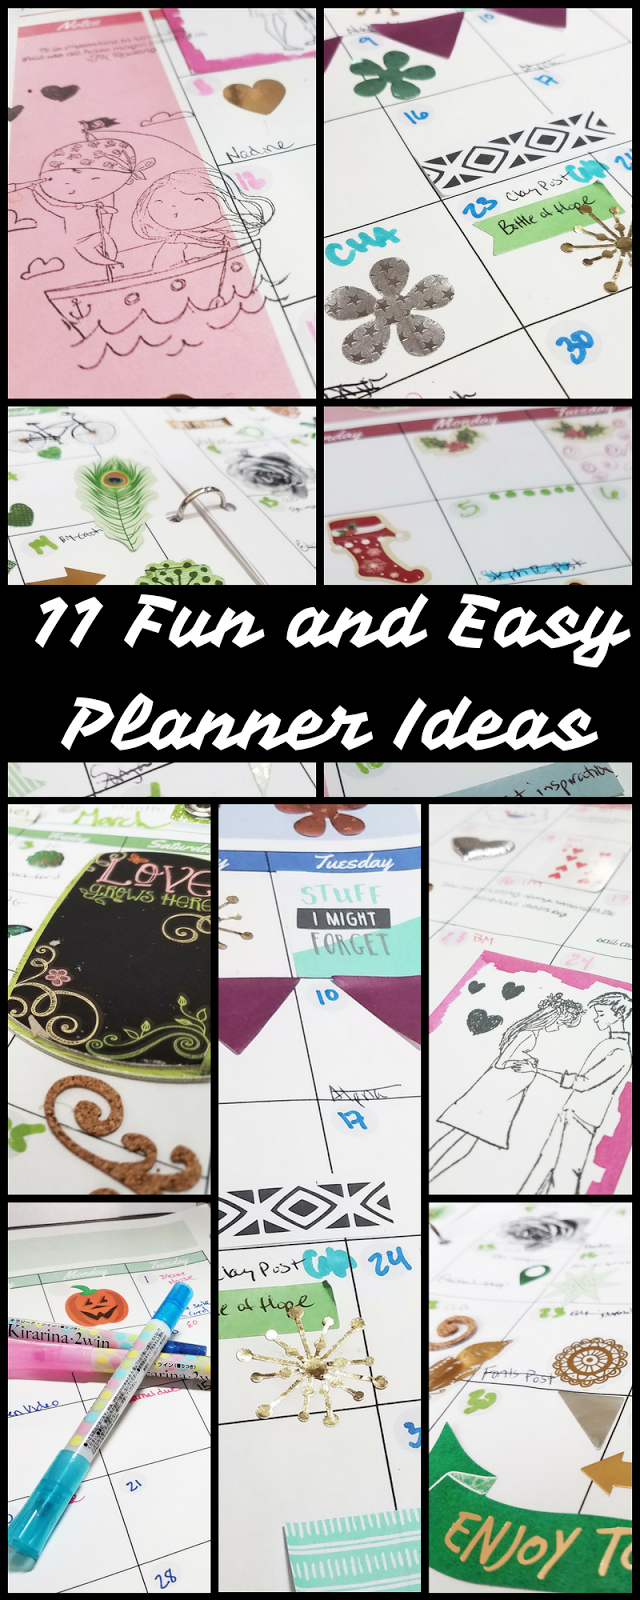 erin reed makes 11 fun and easy planner ideas